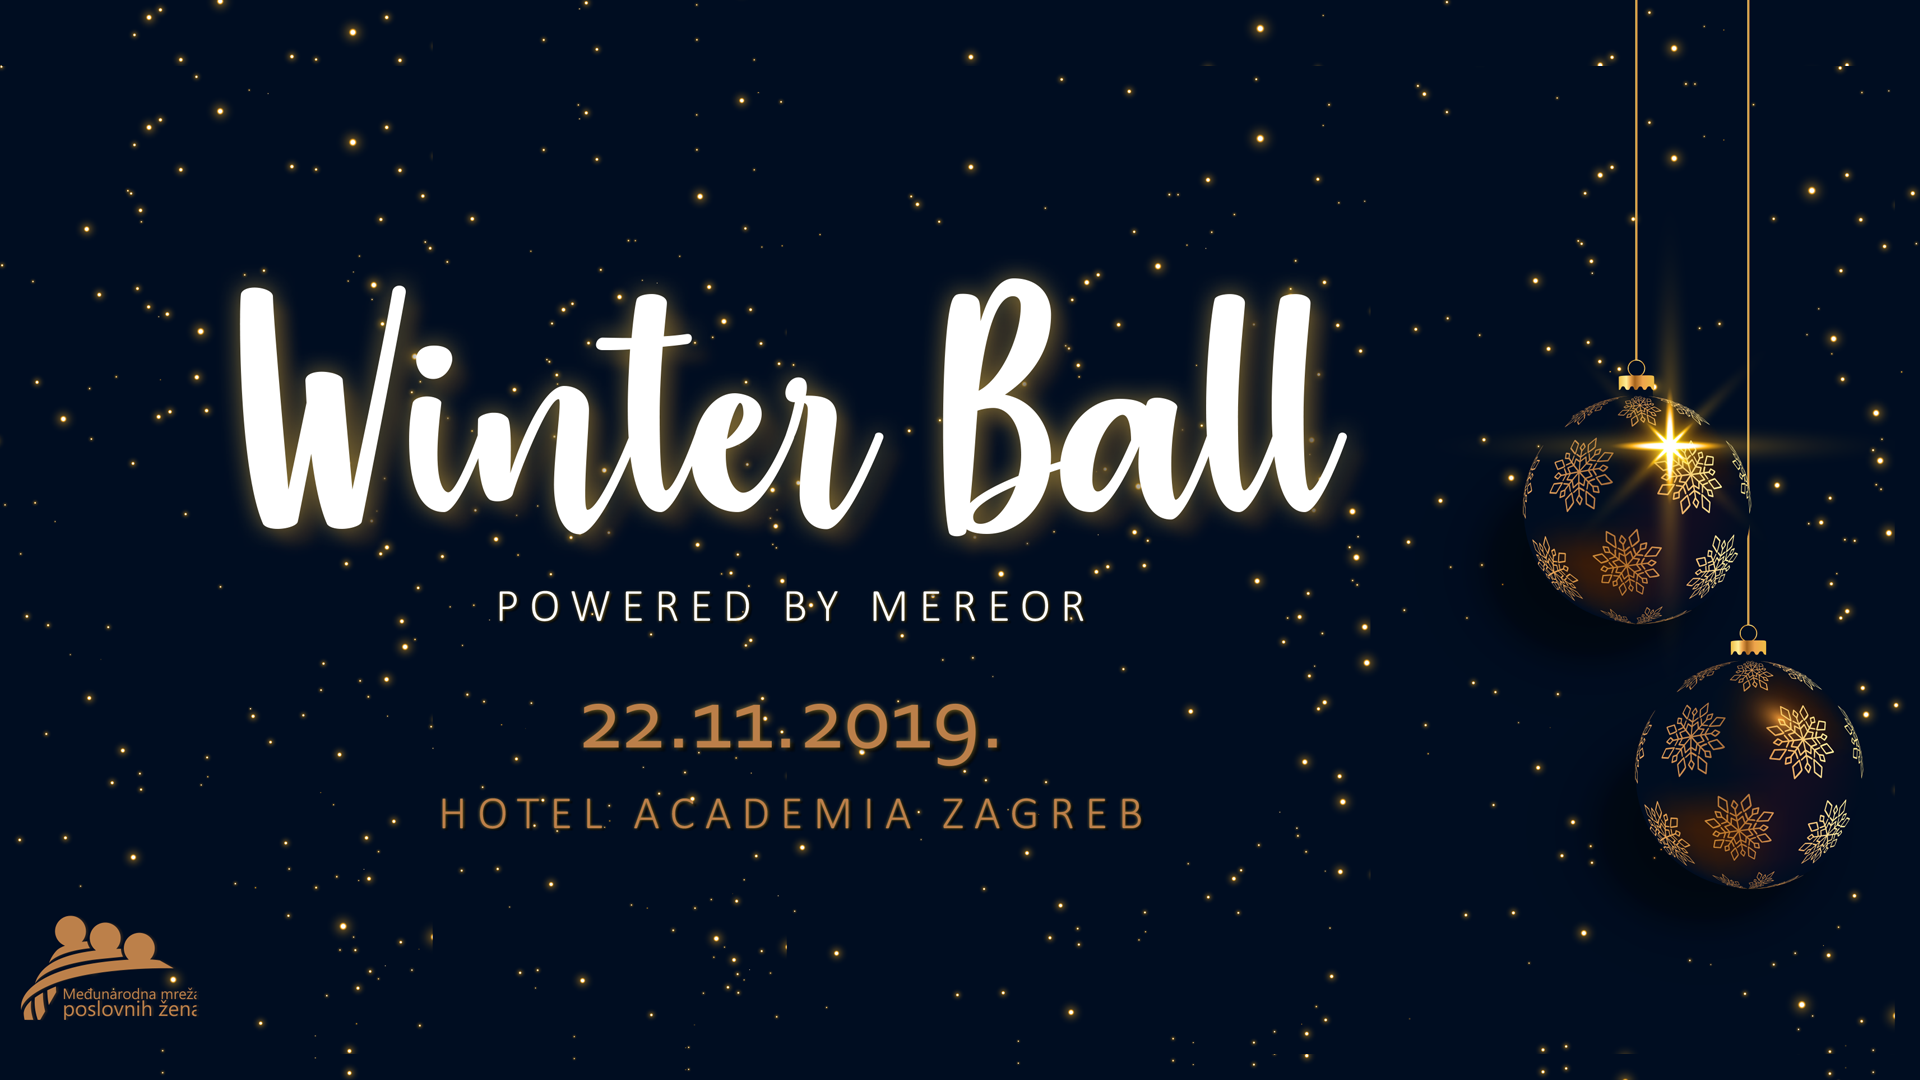 Mreža žena - Winter Ball 2019